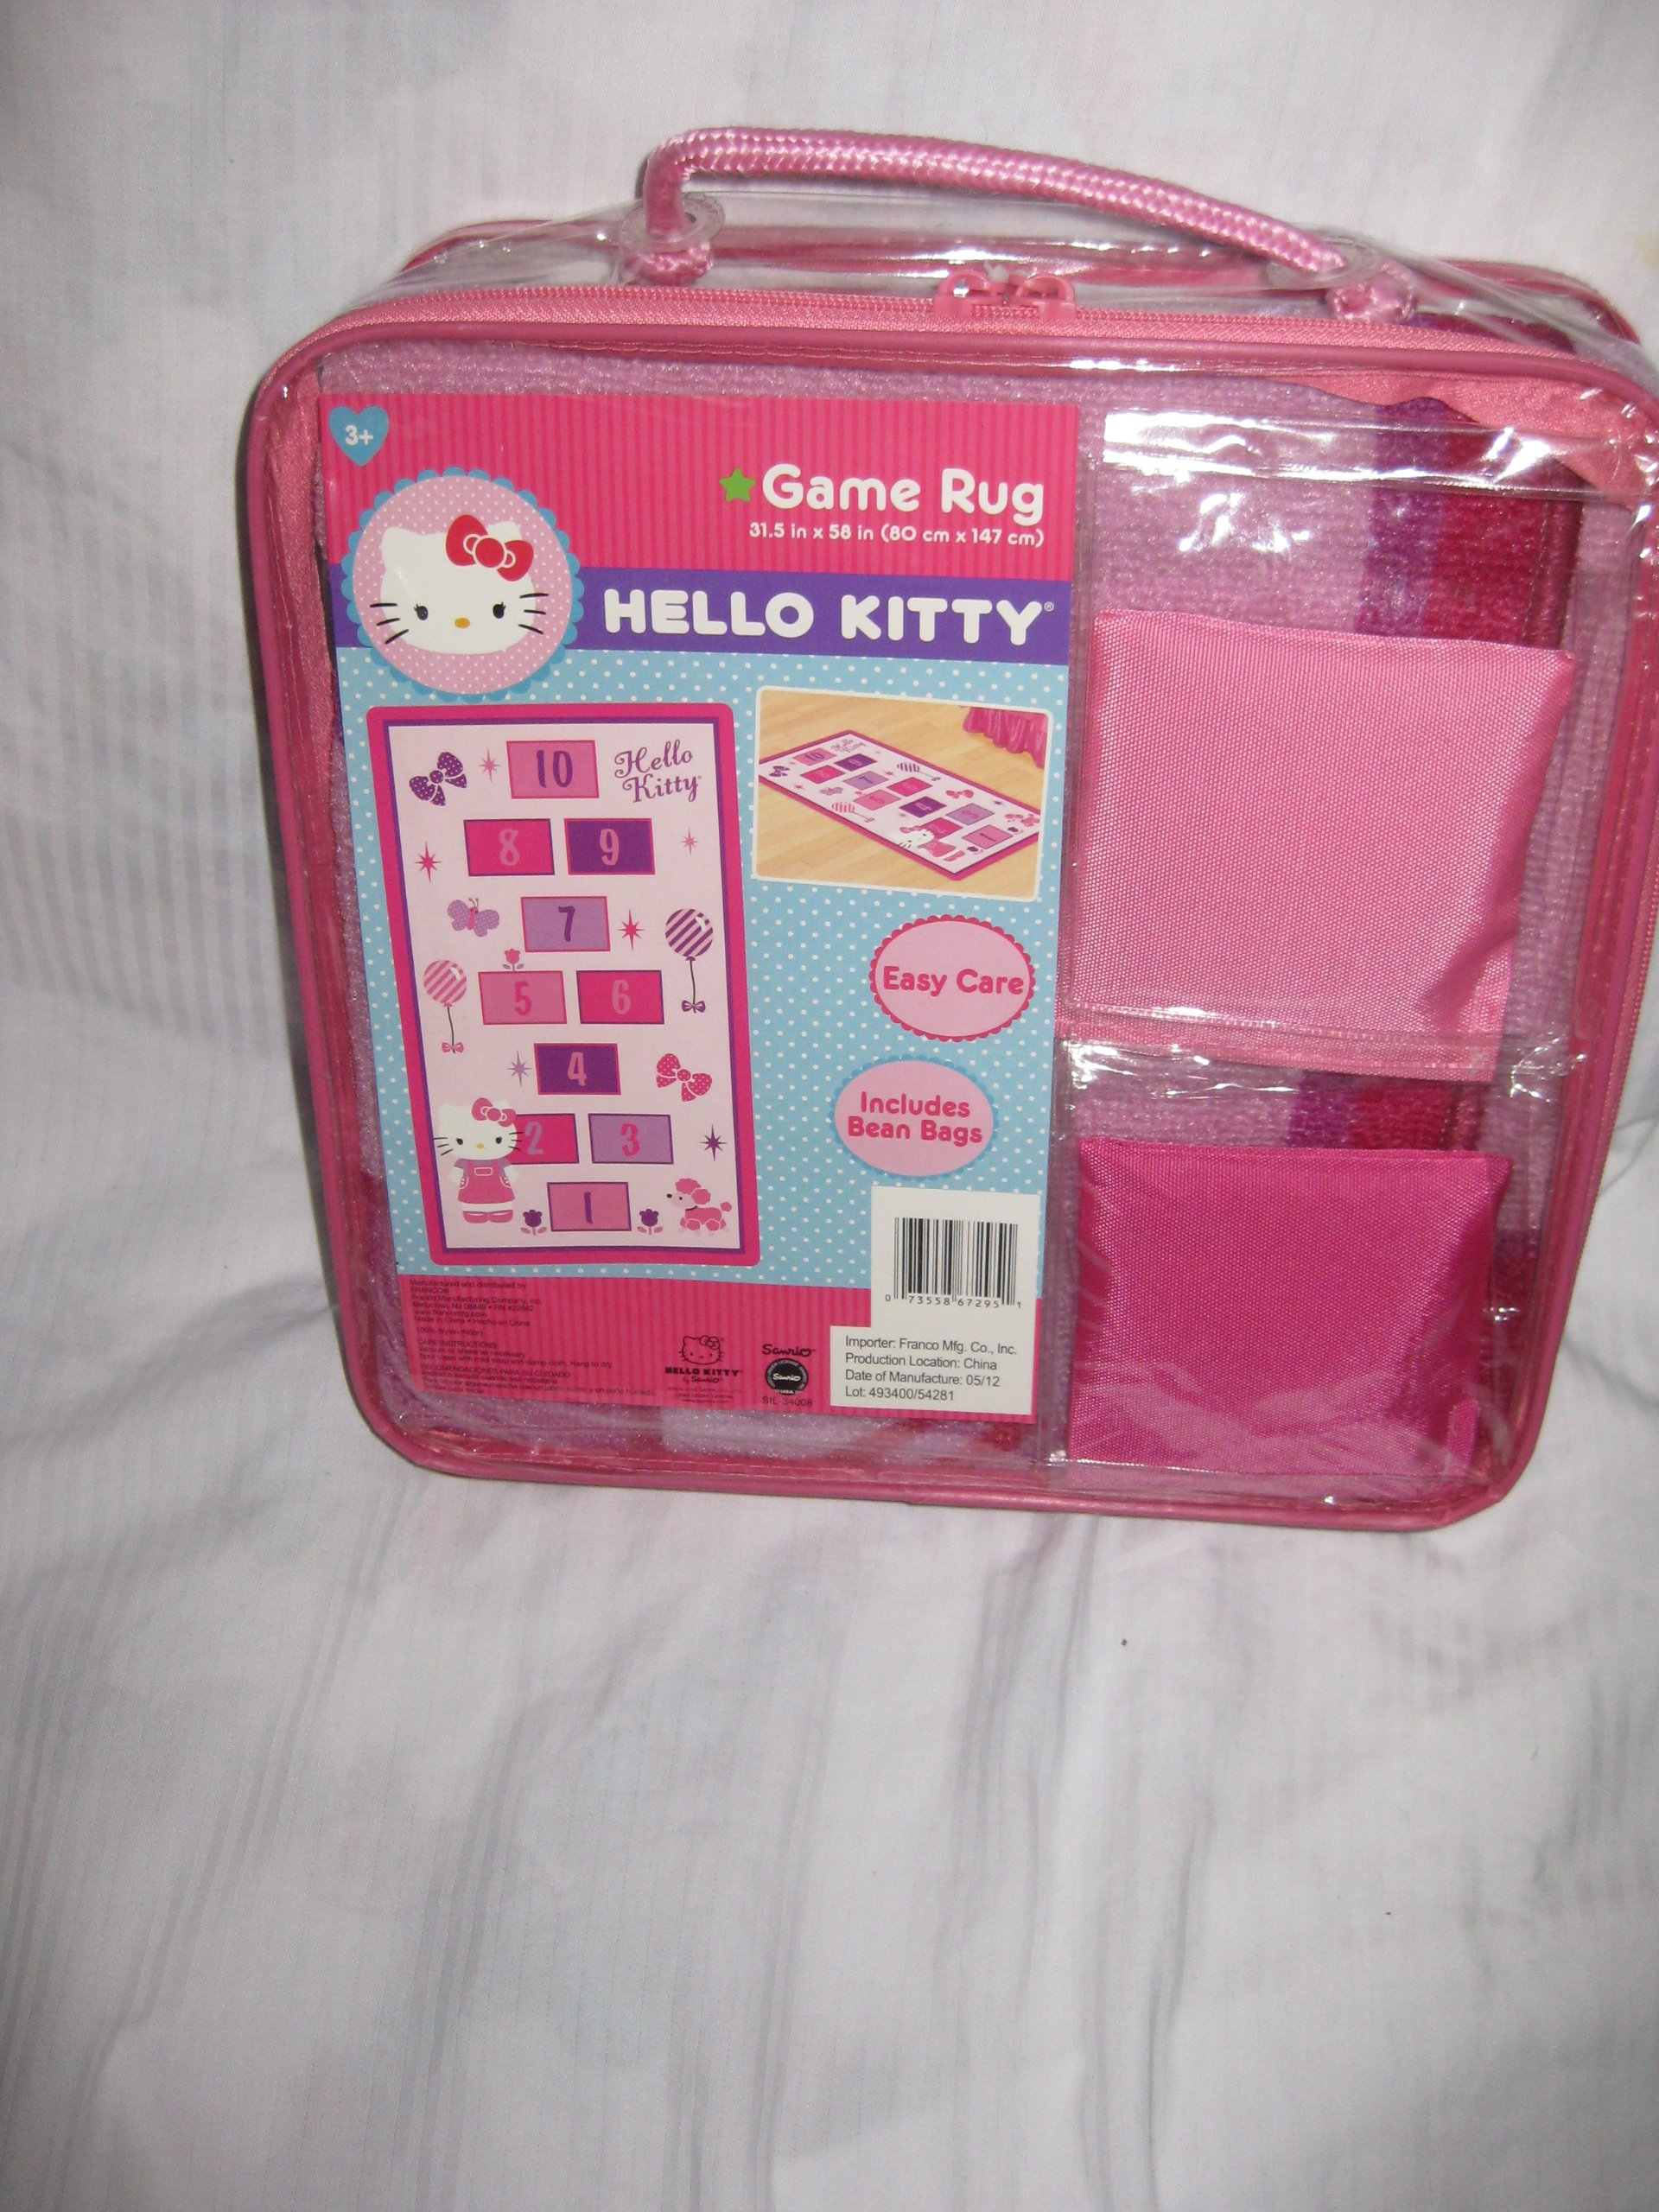 Galleon Hello Kitty Hopscotch Game Rug Includes Bean